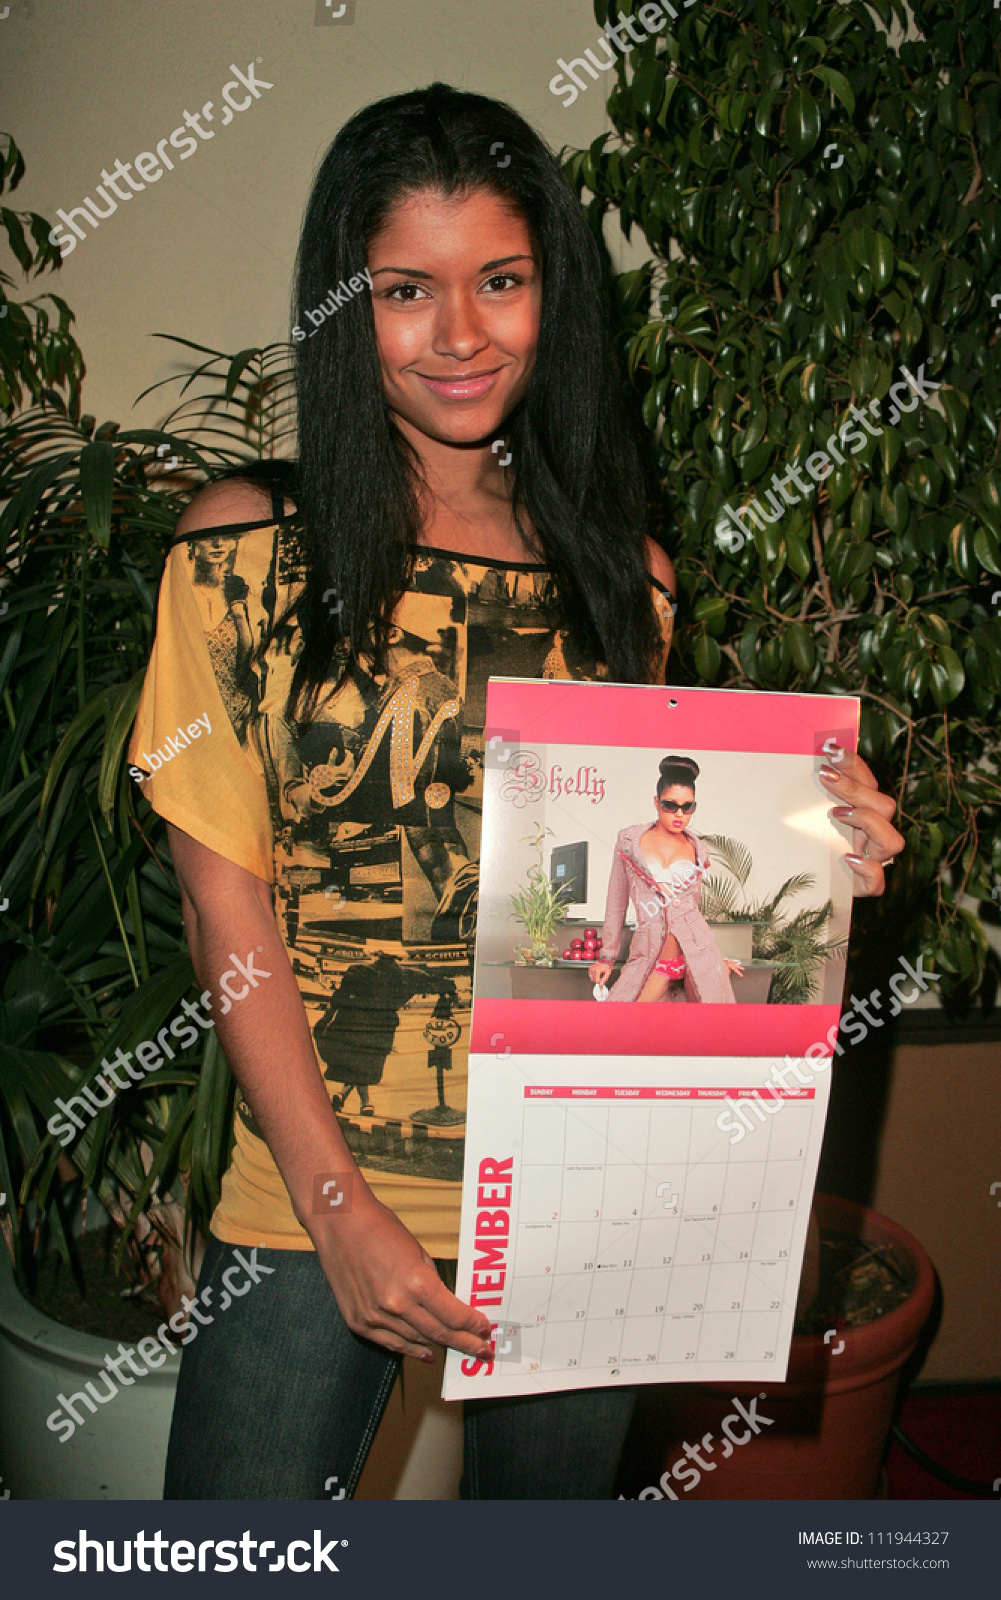 Shelly rio top x calendar release stock photo royalty free shelly rio at the top x calendar release pre oscar party hosted by denyce lawton thecheapjerseys Images